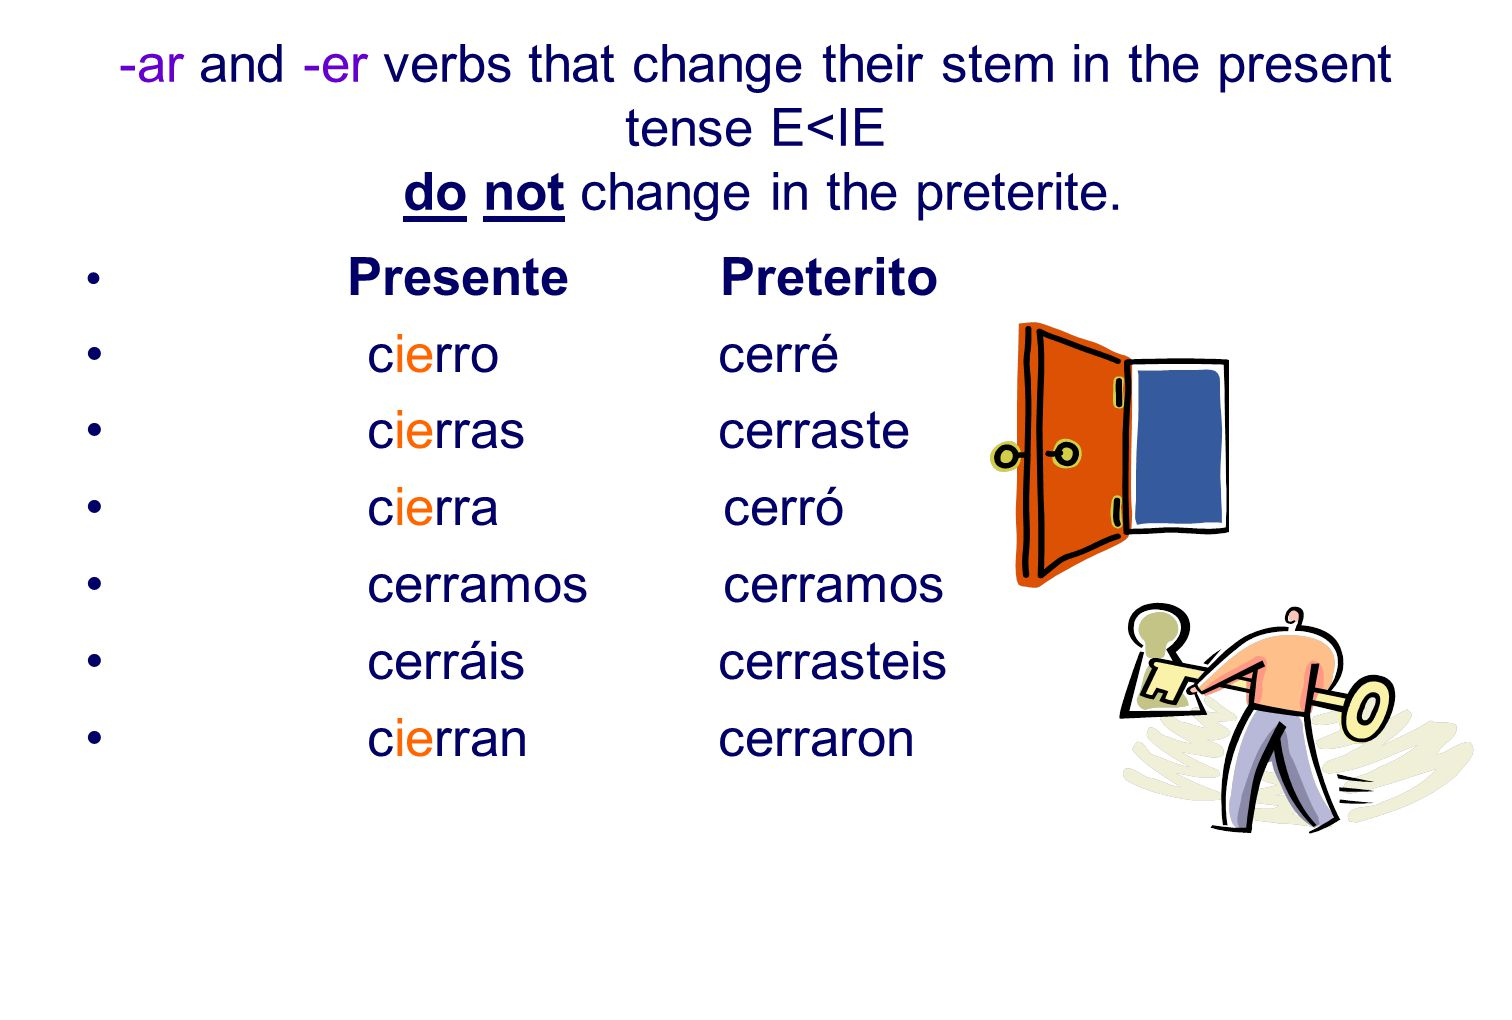 -ar and -er verbs that change their stem in the present tense E<IE do not change in the preterite.